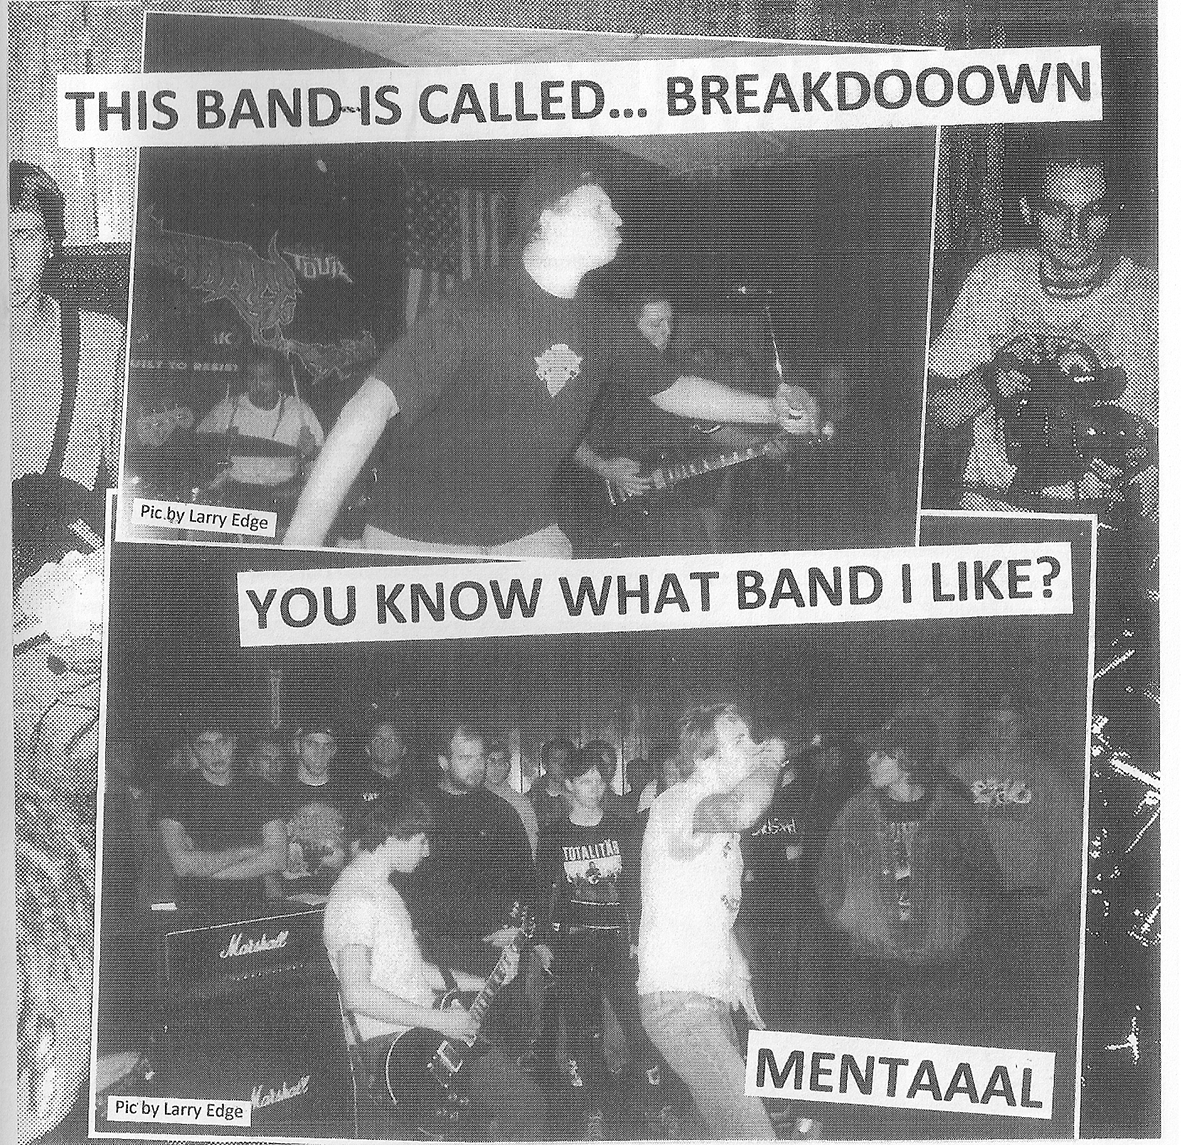 Mental and Breakdown in Powered Records Fanzine